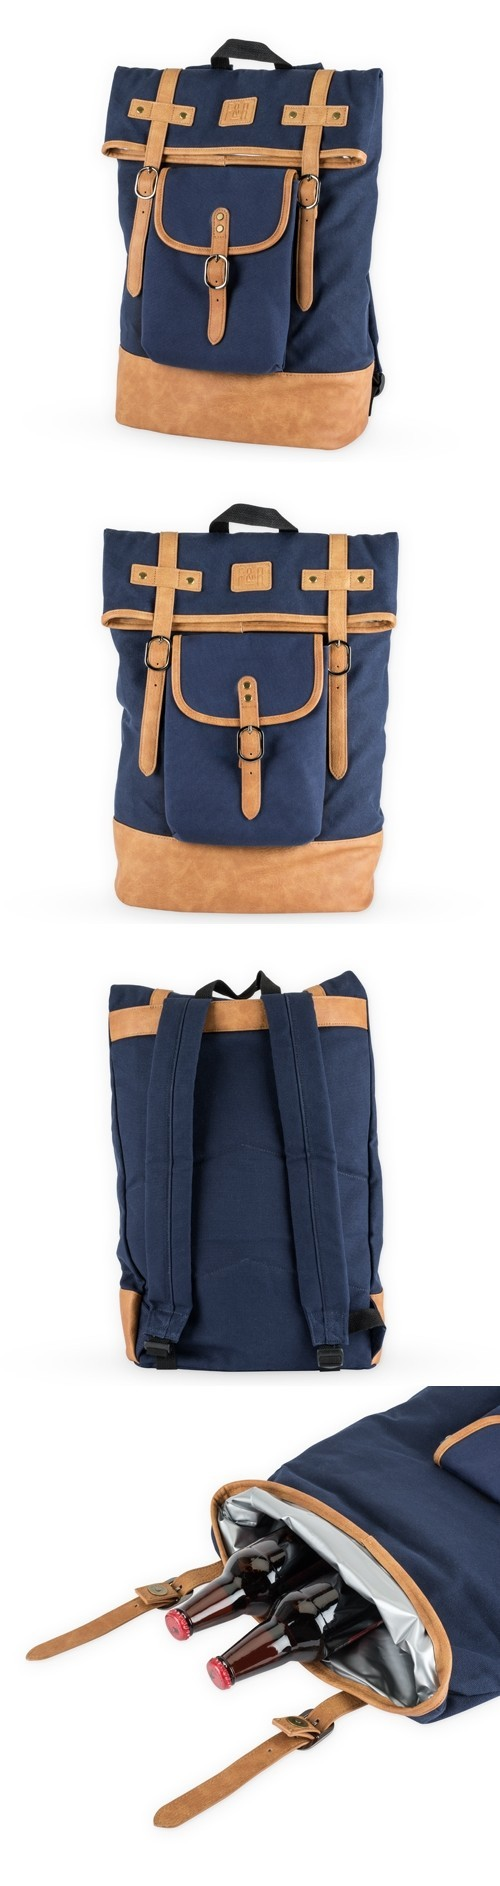 Insulated Canvas Cooler Adventure Backpack in Blue by Foster & Rye